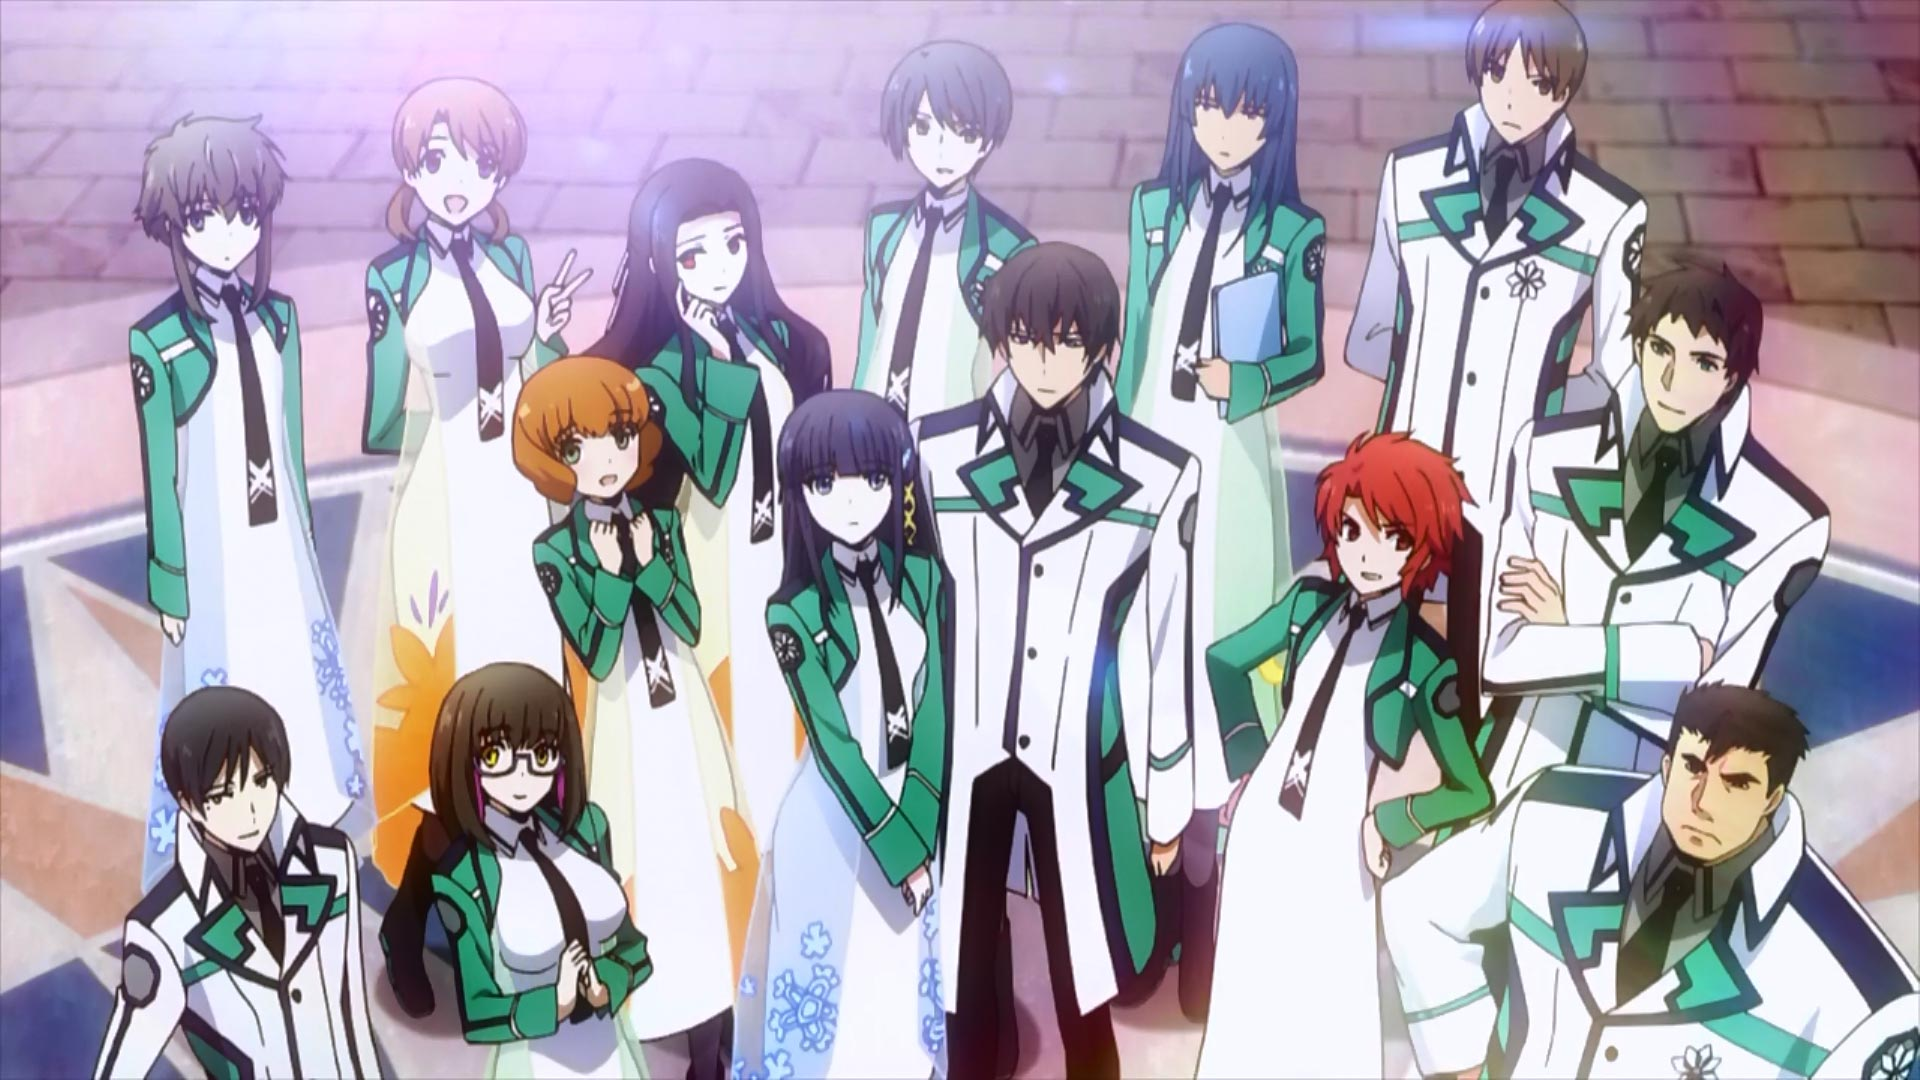 10,000 Anime Fans Voted for the Fictional Schools They Want to Study At haruhichan.com Mahouka Koukou no Rettousei National Magic University First Affiliate High School